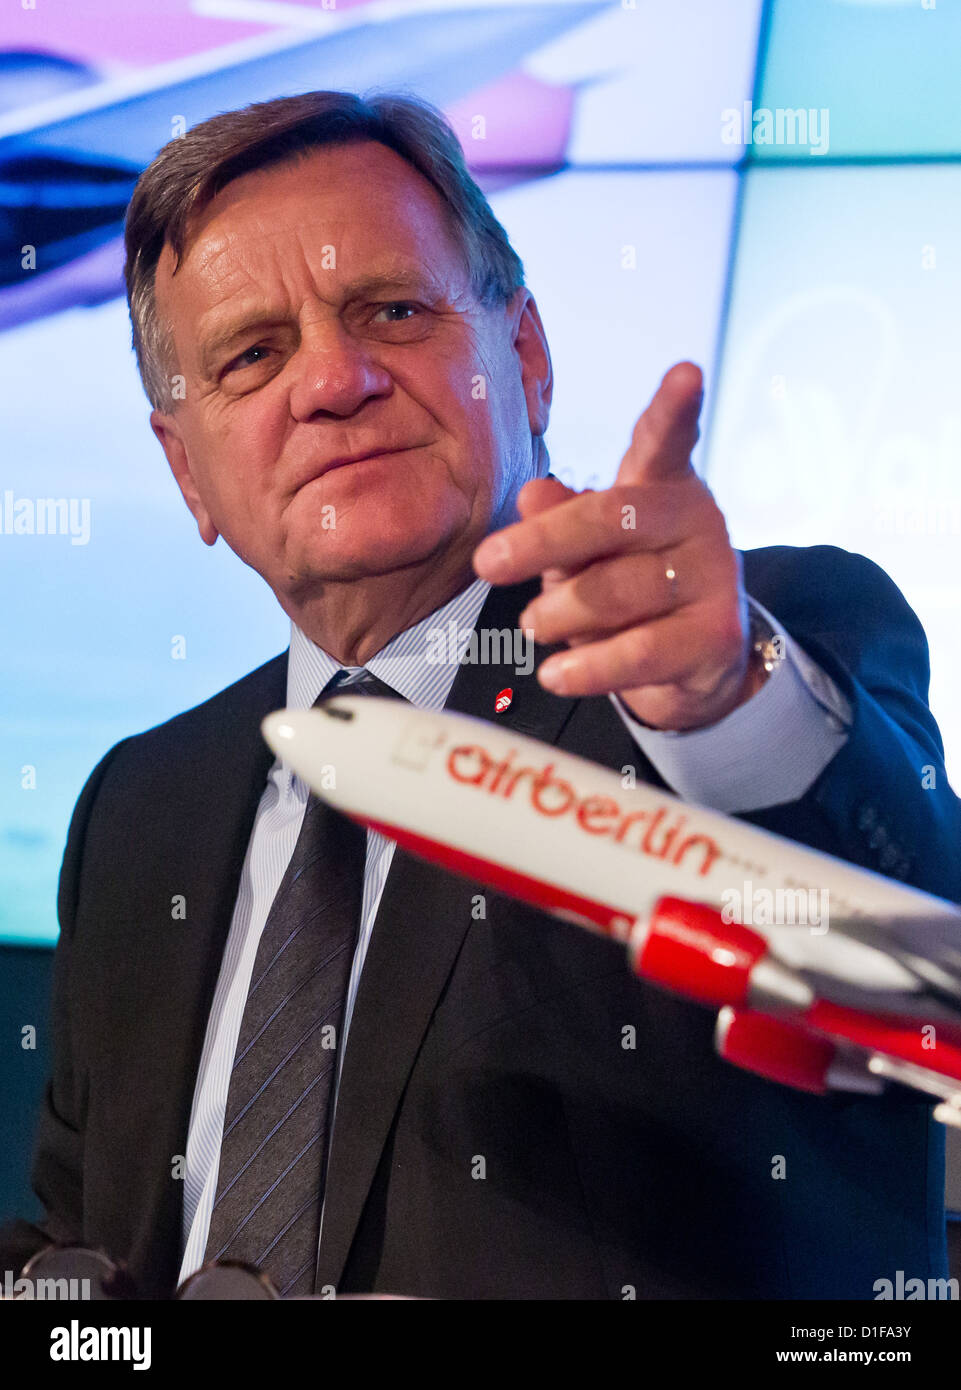 Hartmut Mehdorn, head of the Air Berlin board and James Hogan, poses with a miniature plane during a press conference - Stock Image